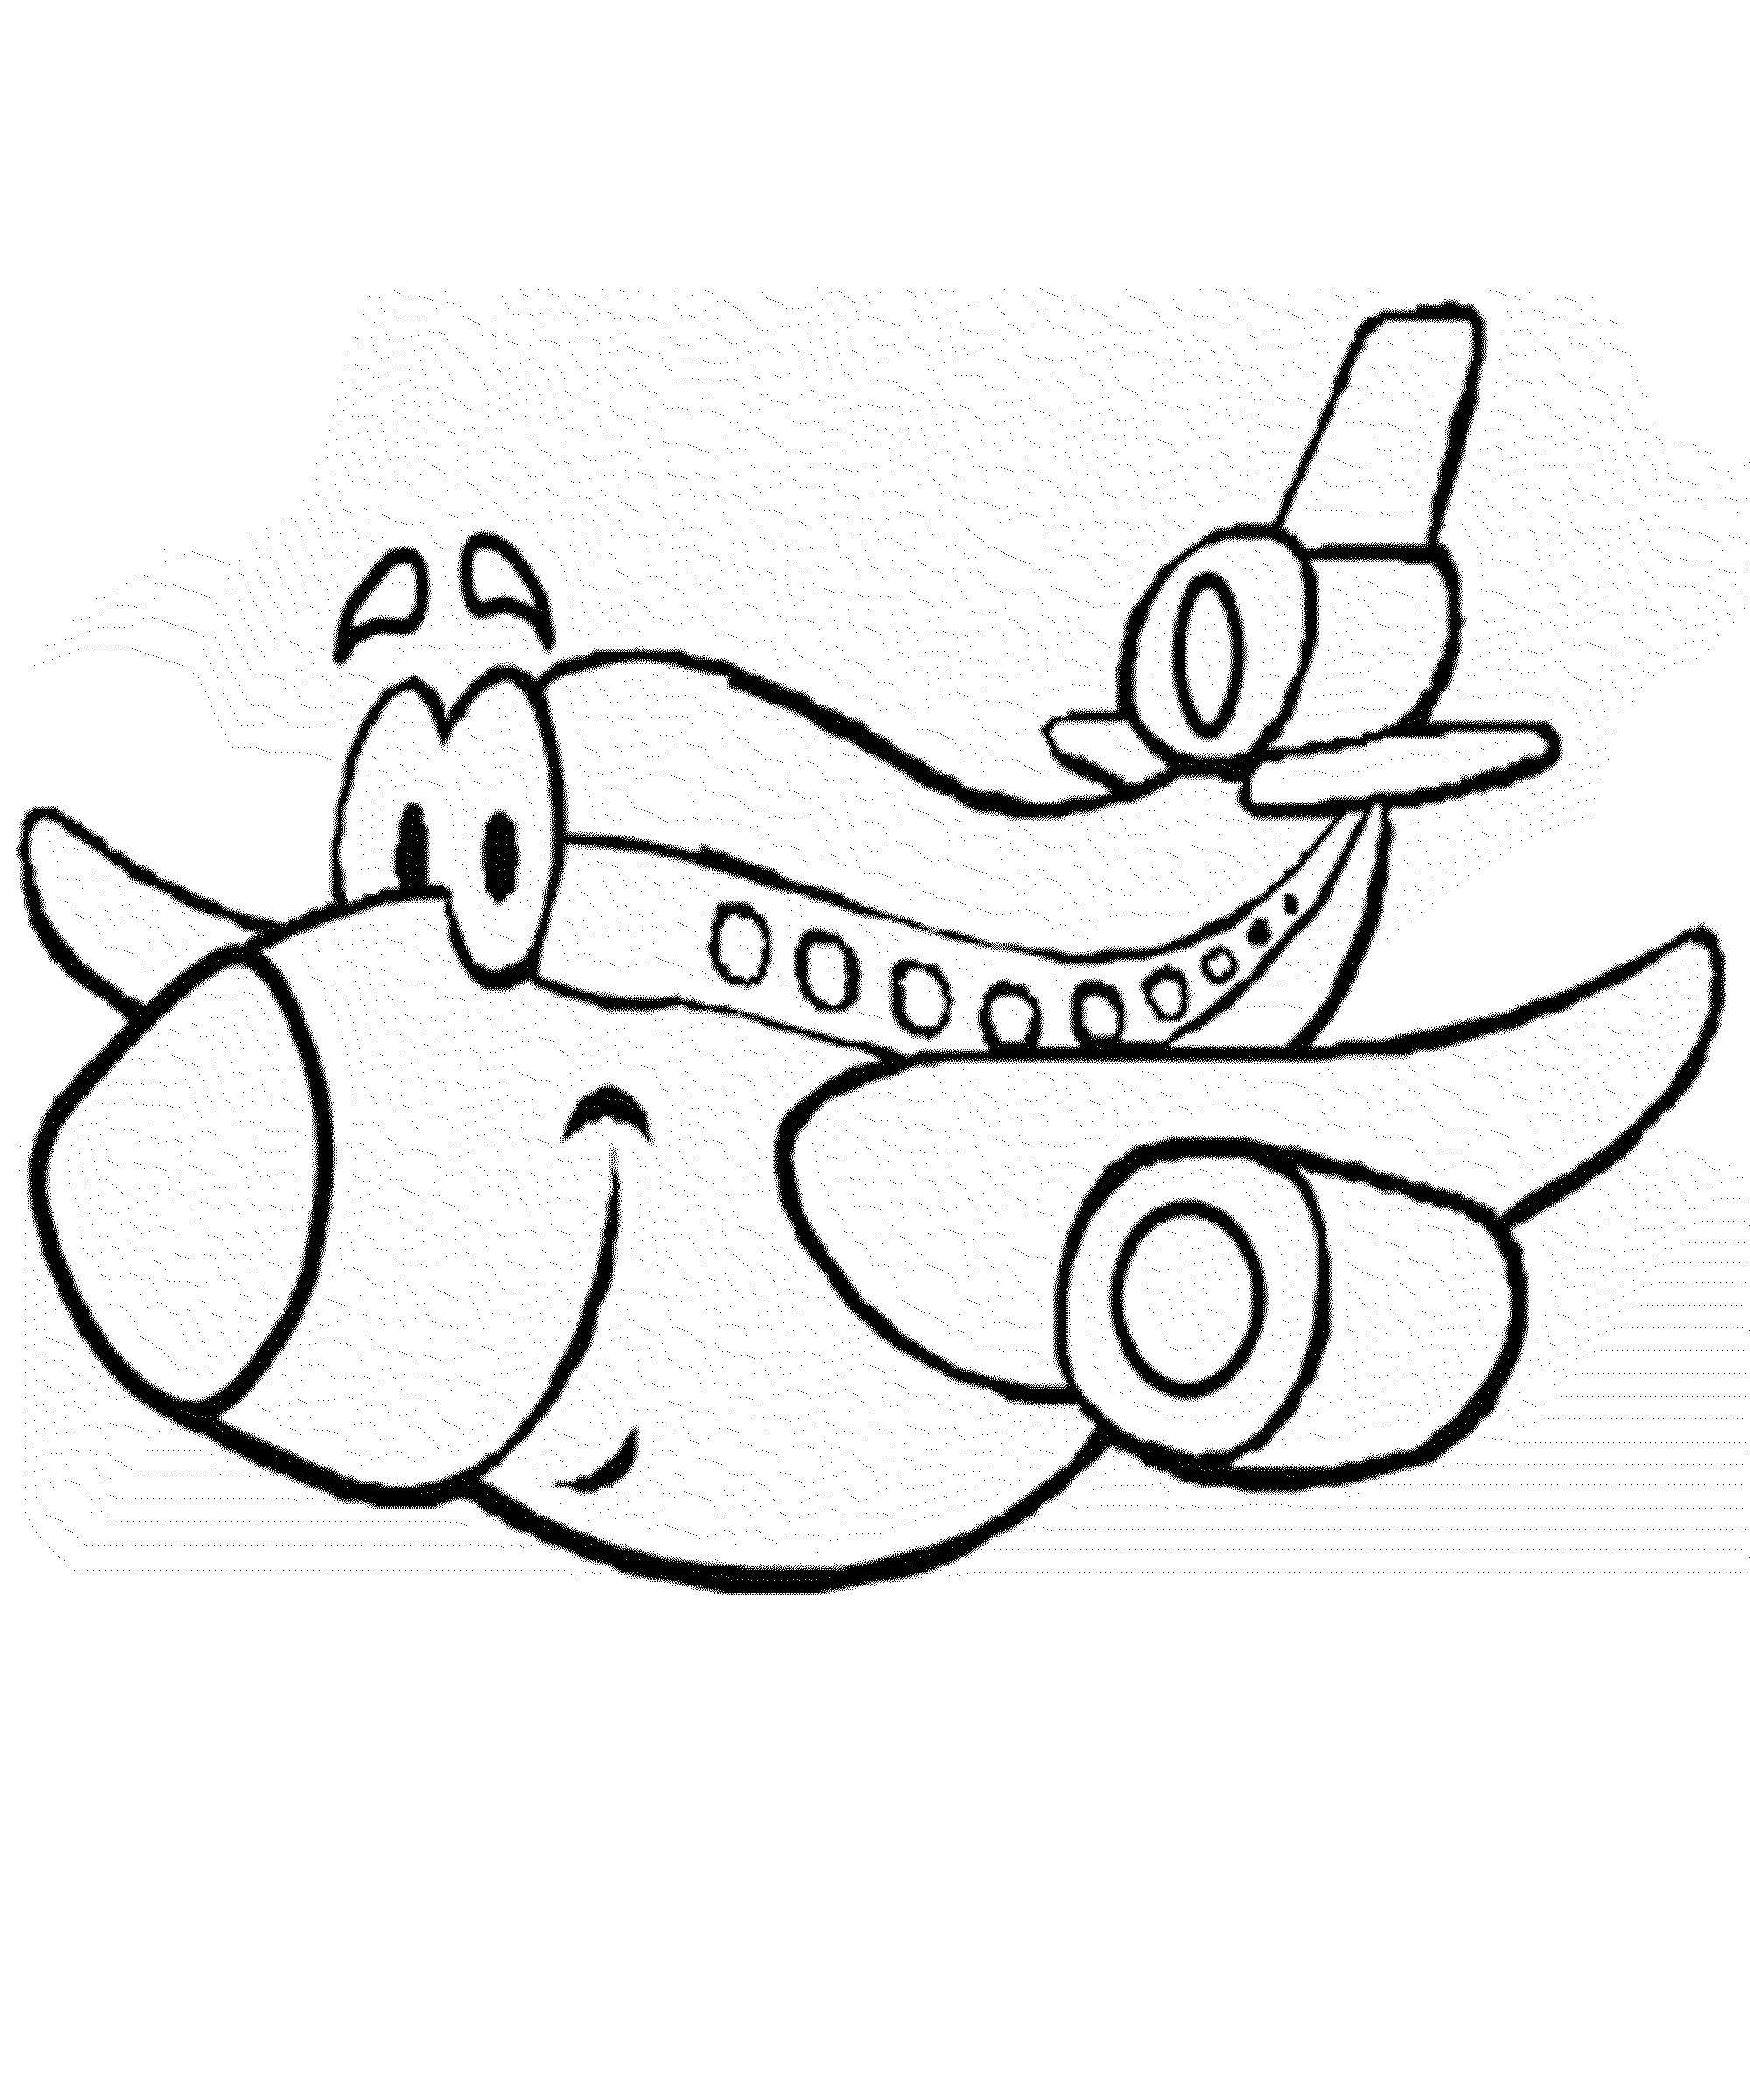 bi plane coloring pages - photo#33